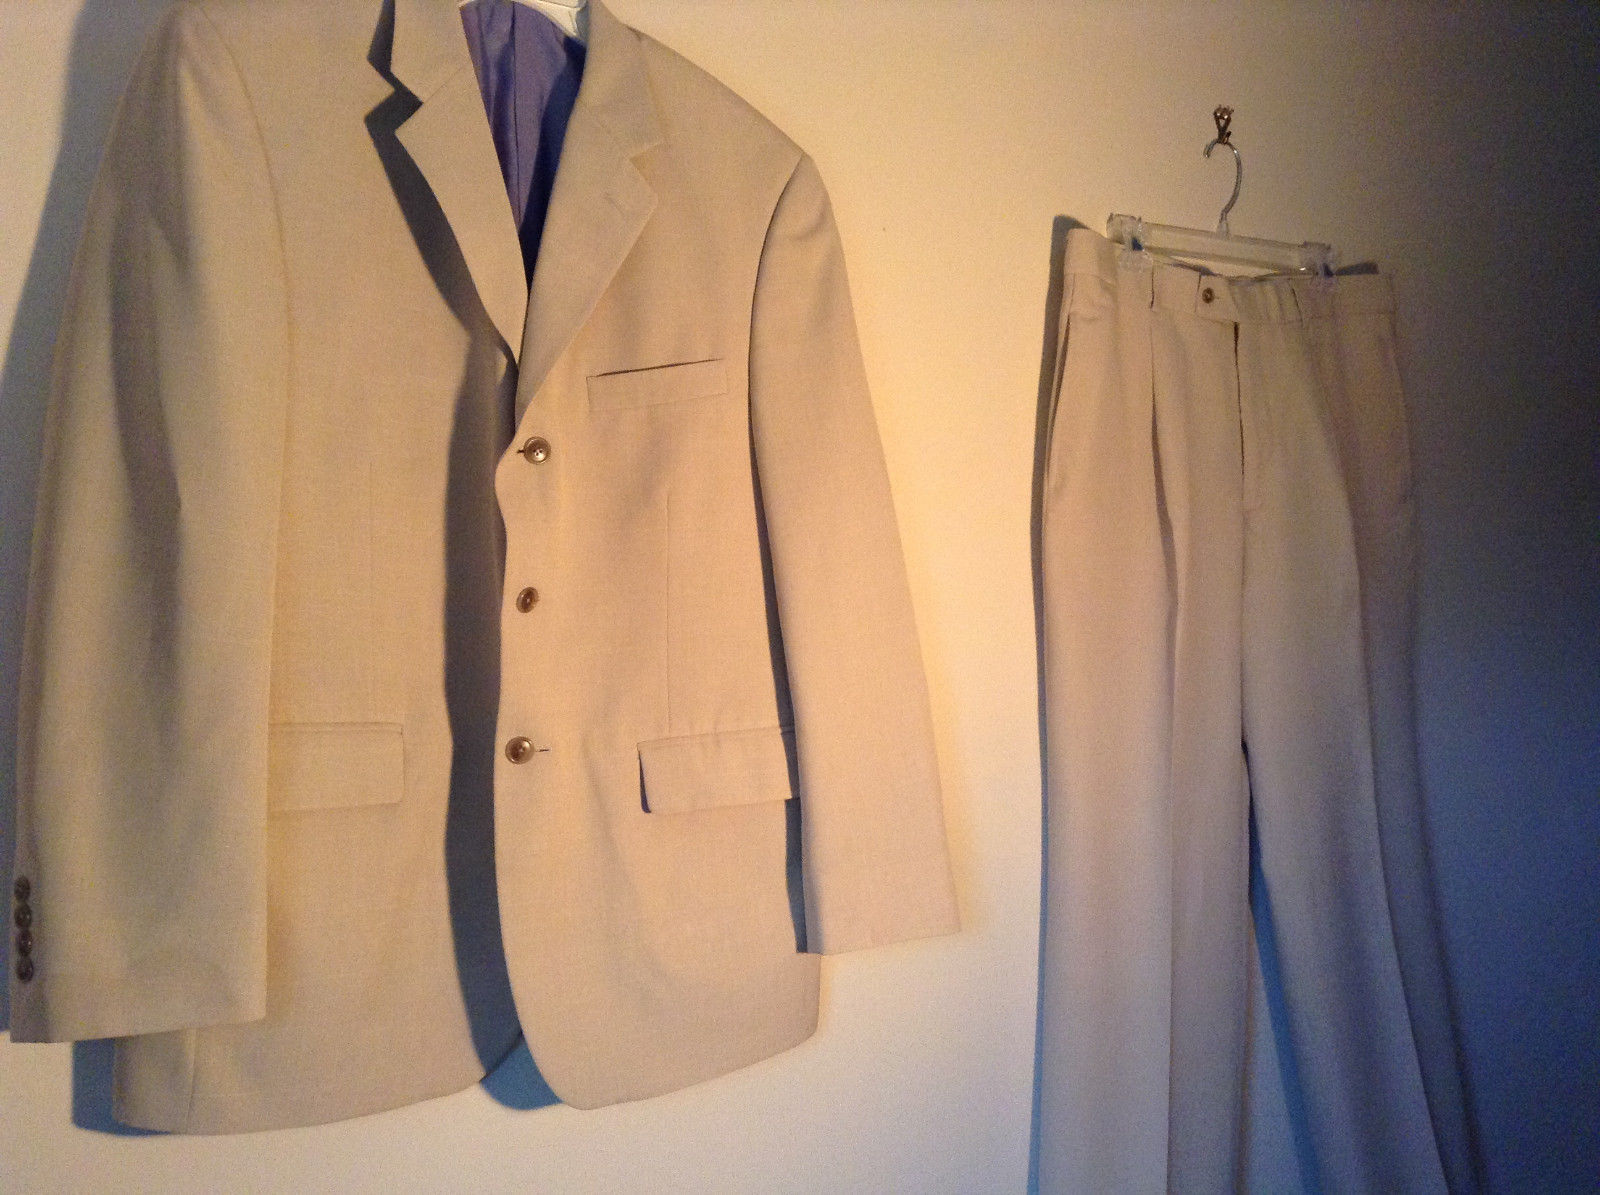 Very Nice Two Piece J Ferrar Jacket and Pant Suit Beige Light Tan Size 36 by 30